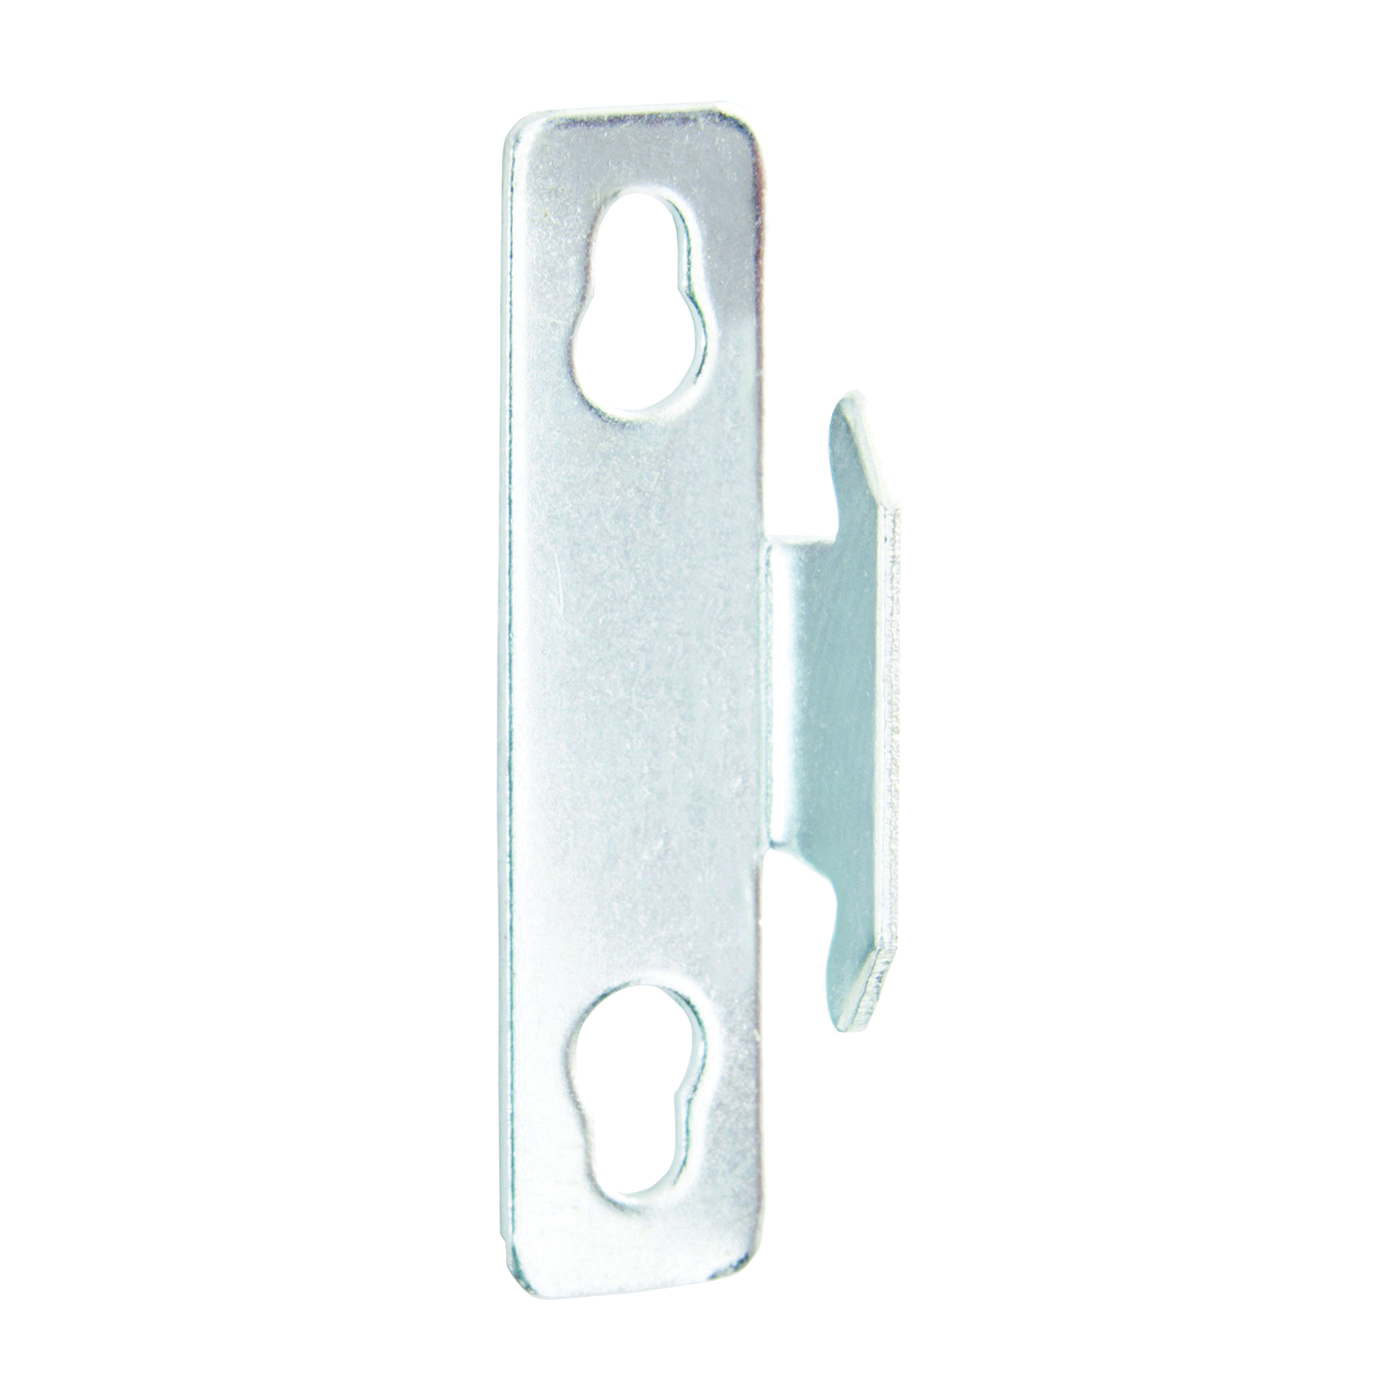 Picture of Kenney KN851 Curtain Rod Bracket, Single, Zinc, Silver, Nail Mounting, 2